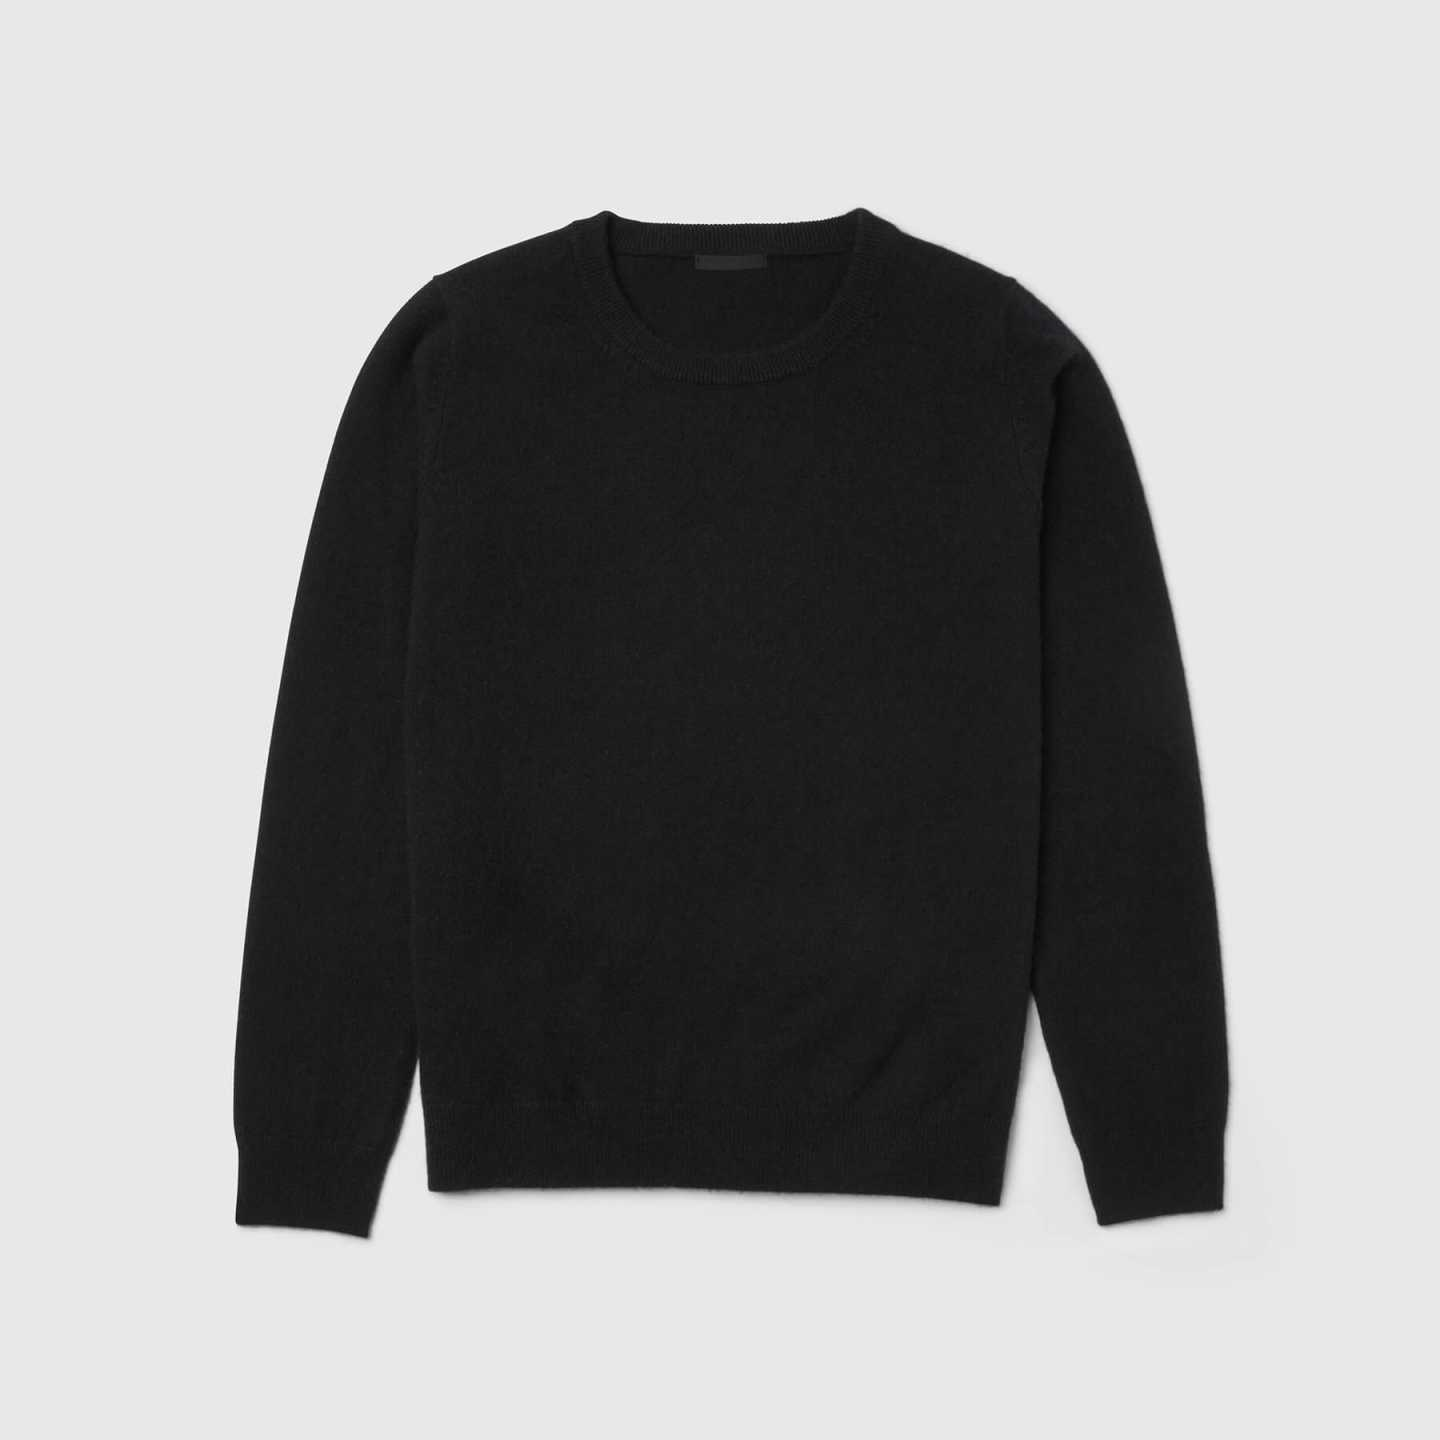 black cashmere sweater for women